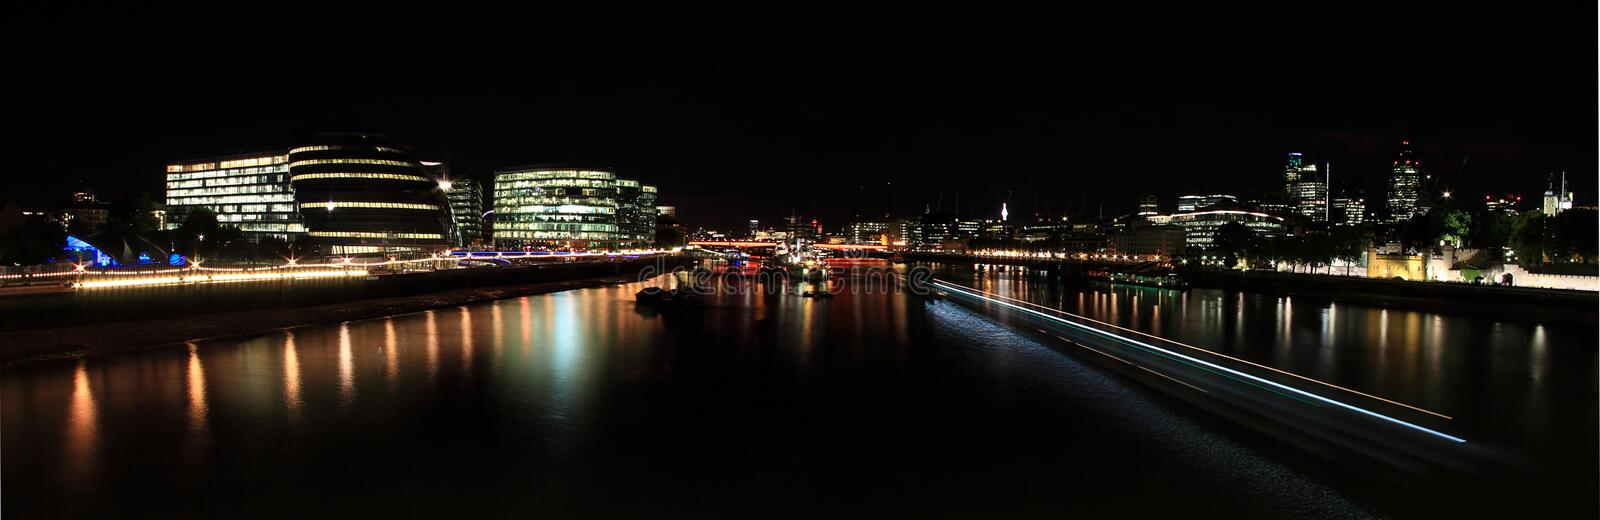 Vue de pont de tour, Londres photo stock